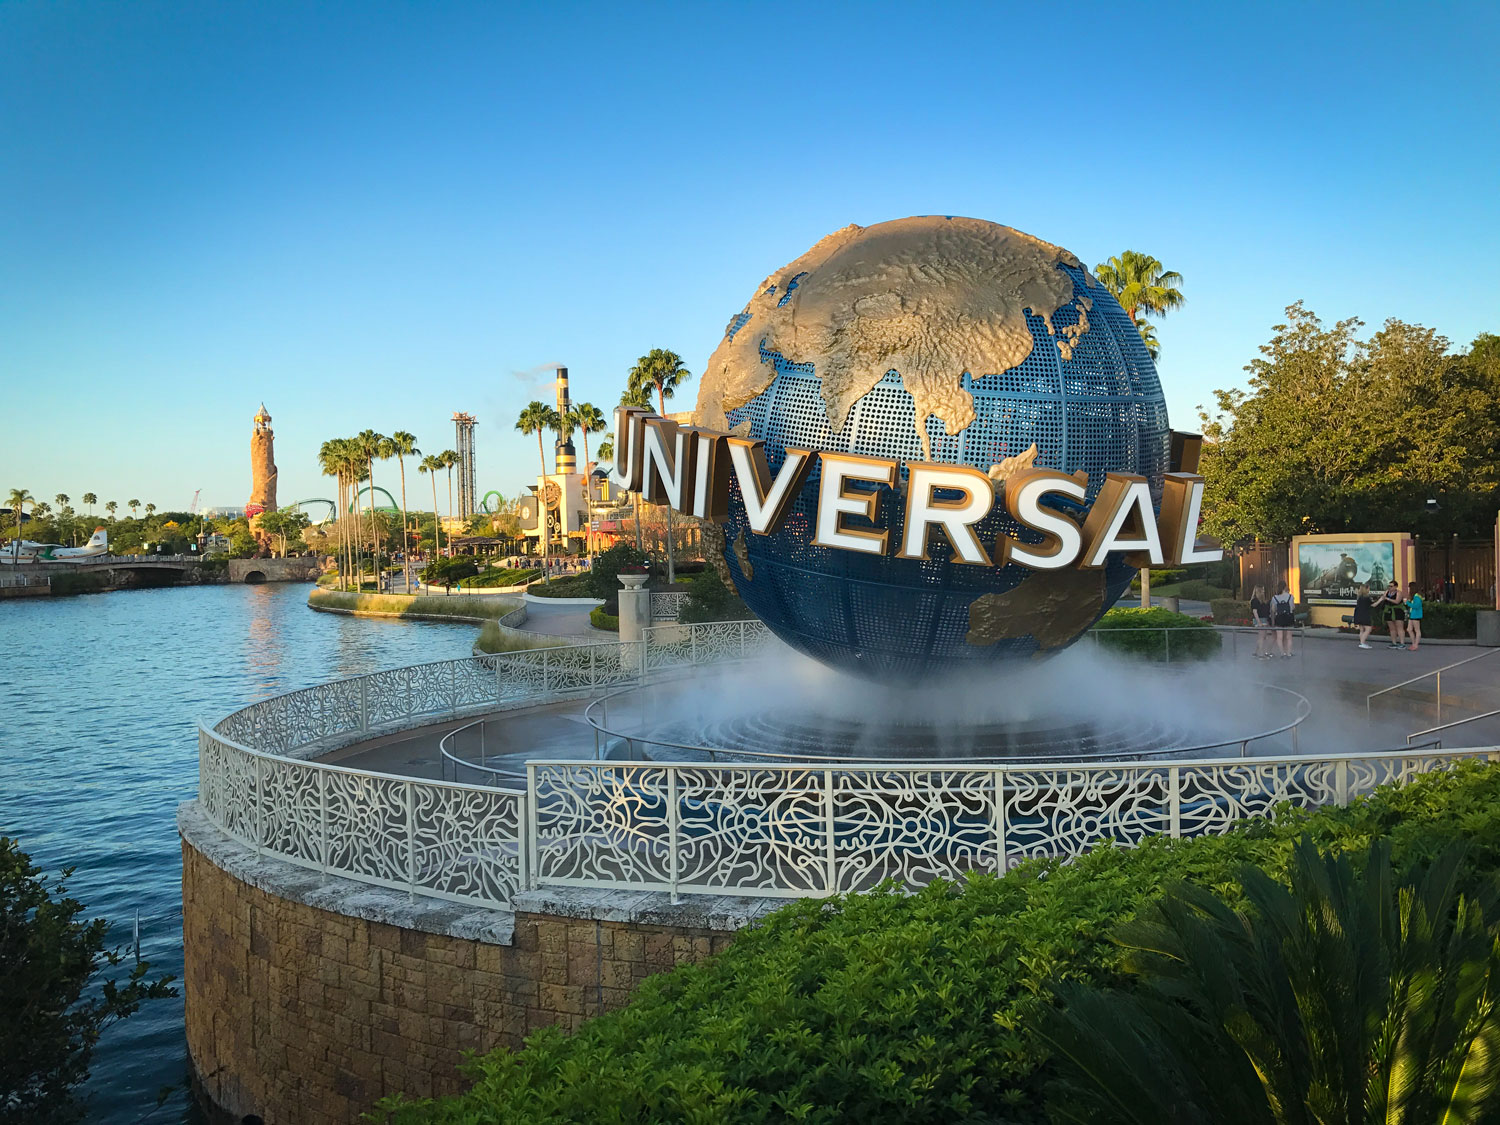 Tips for Universal Studios Florida - Family Travel